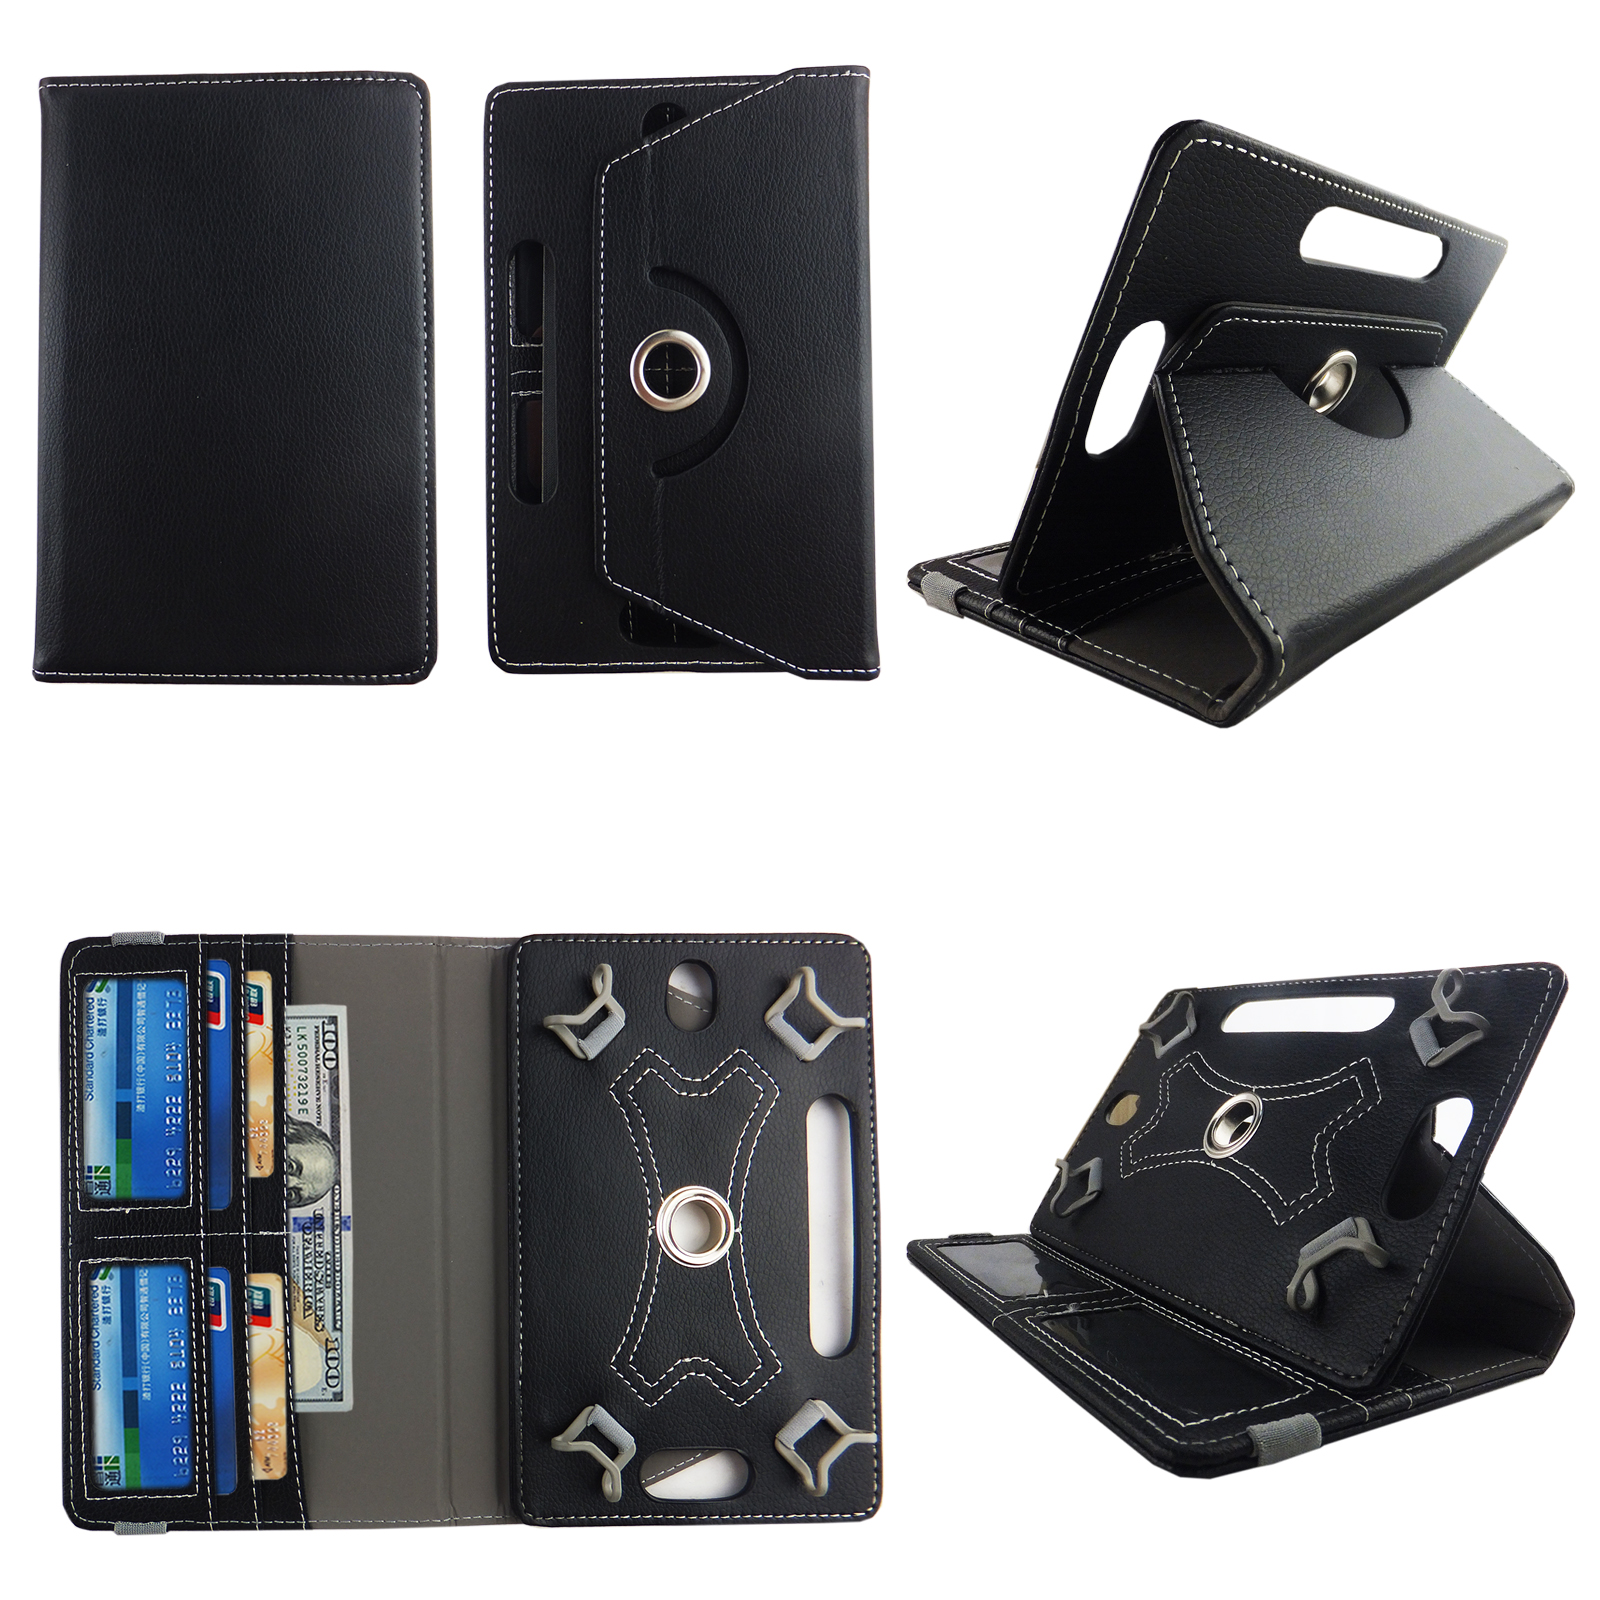 "Black tablet case 8 inch  for Asus Memo Pad  8"" 8inch android tablet cases 360 rotating slim folio stand protector pu leather cover travel e-reader cash slots"